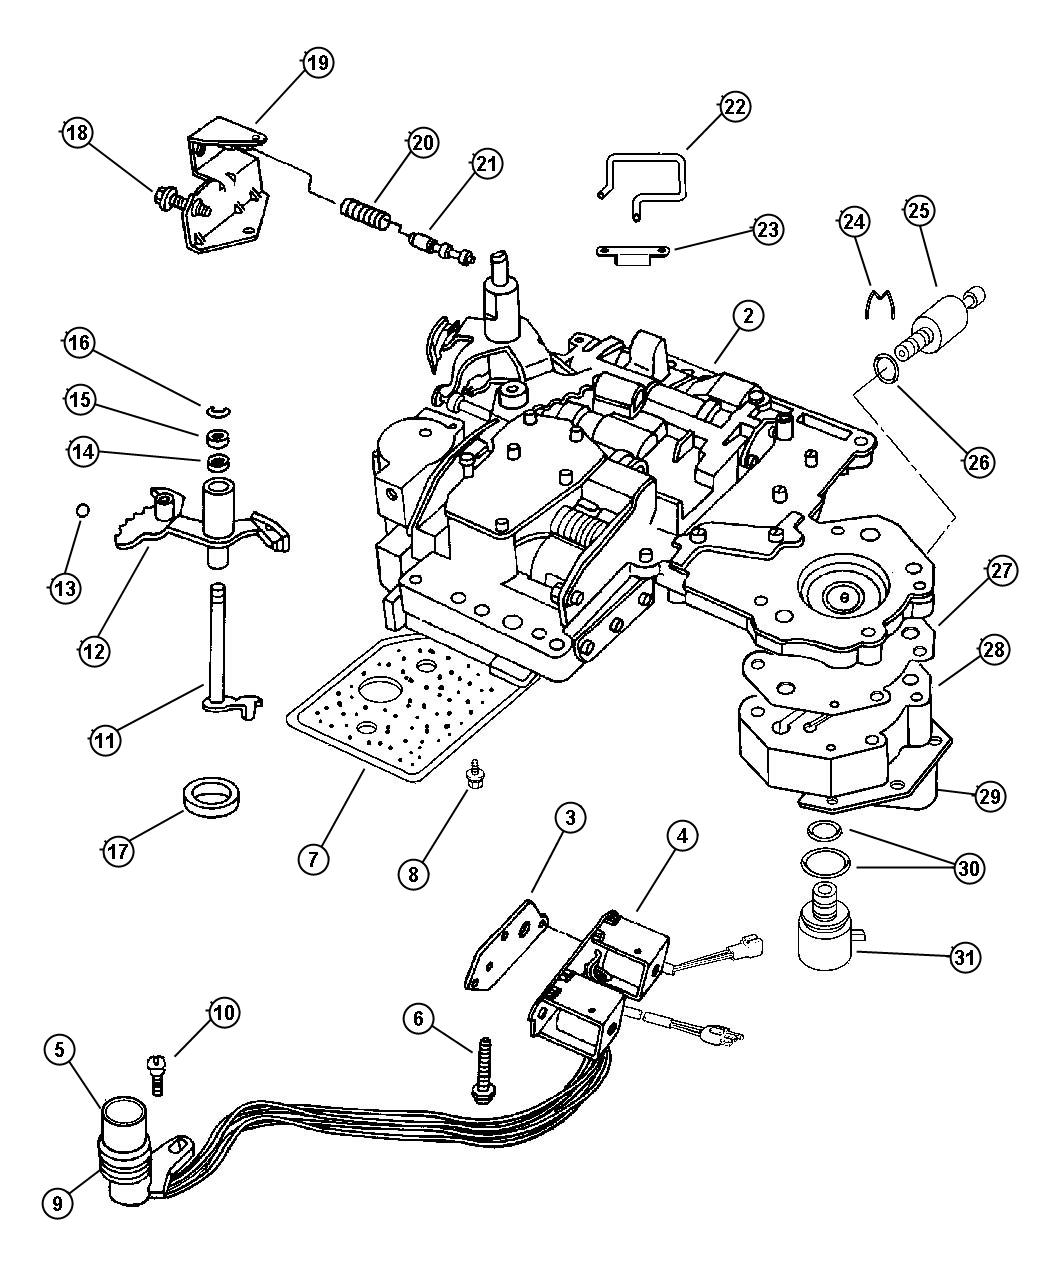 Wk Chevy Impala Power Steering Diagram